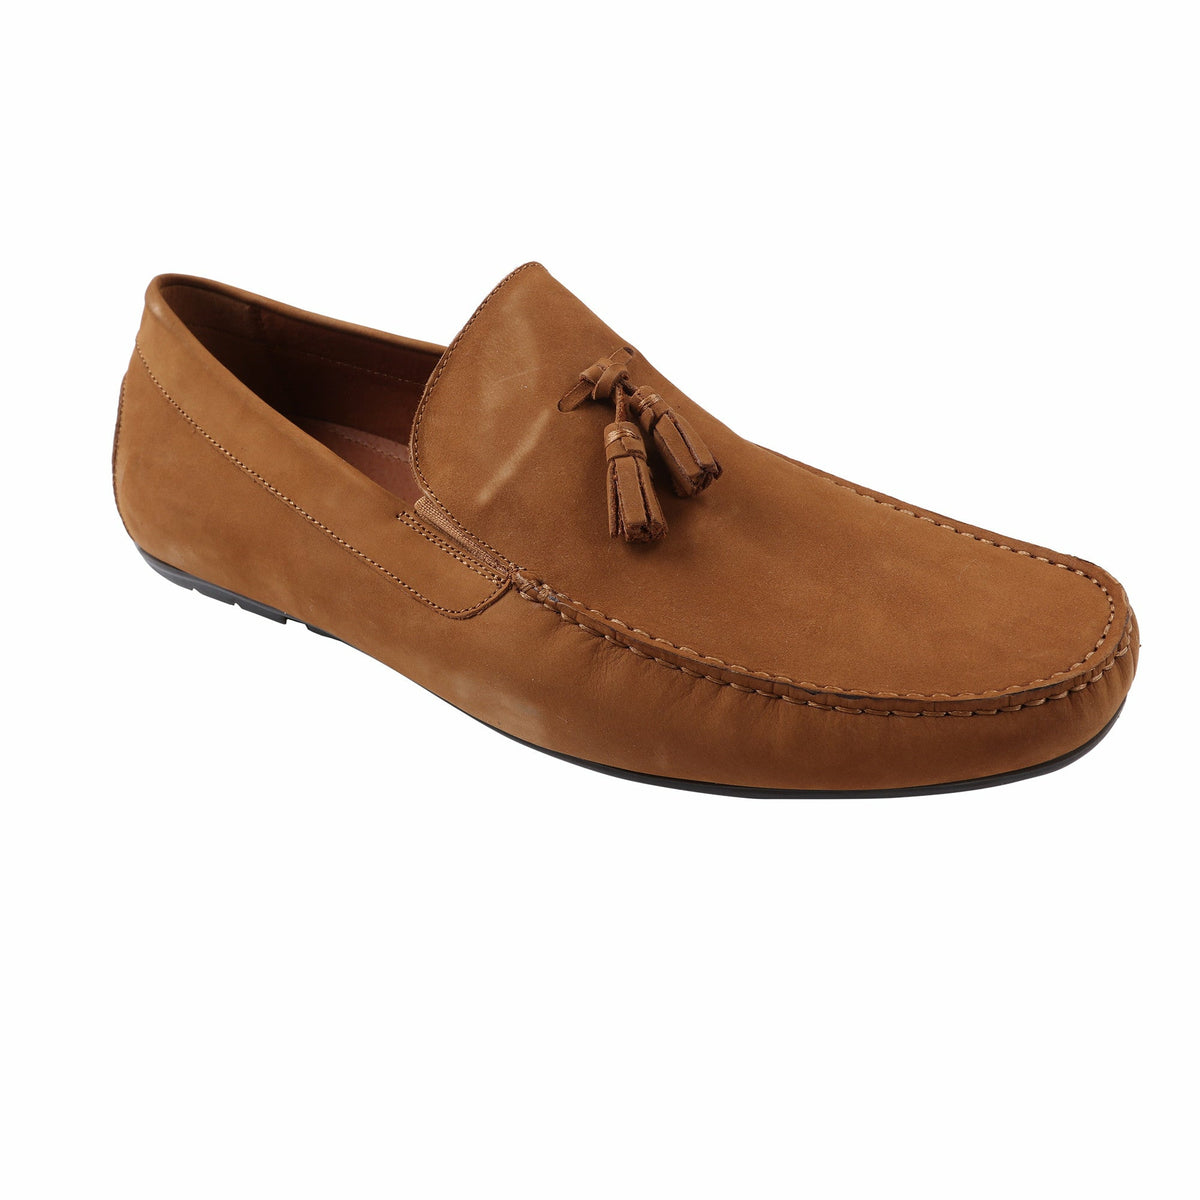 Florsheim 'Castello' Moccasin Shoe in Tan